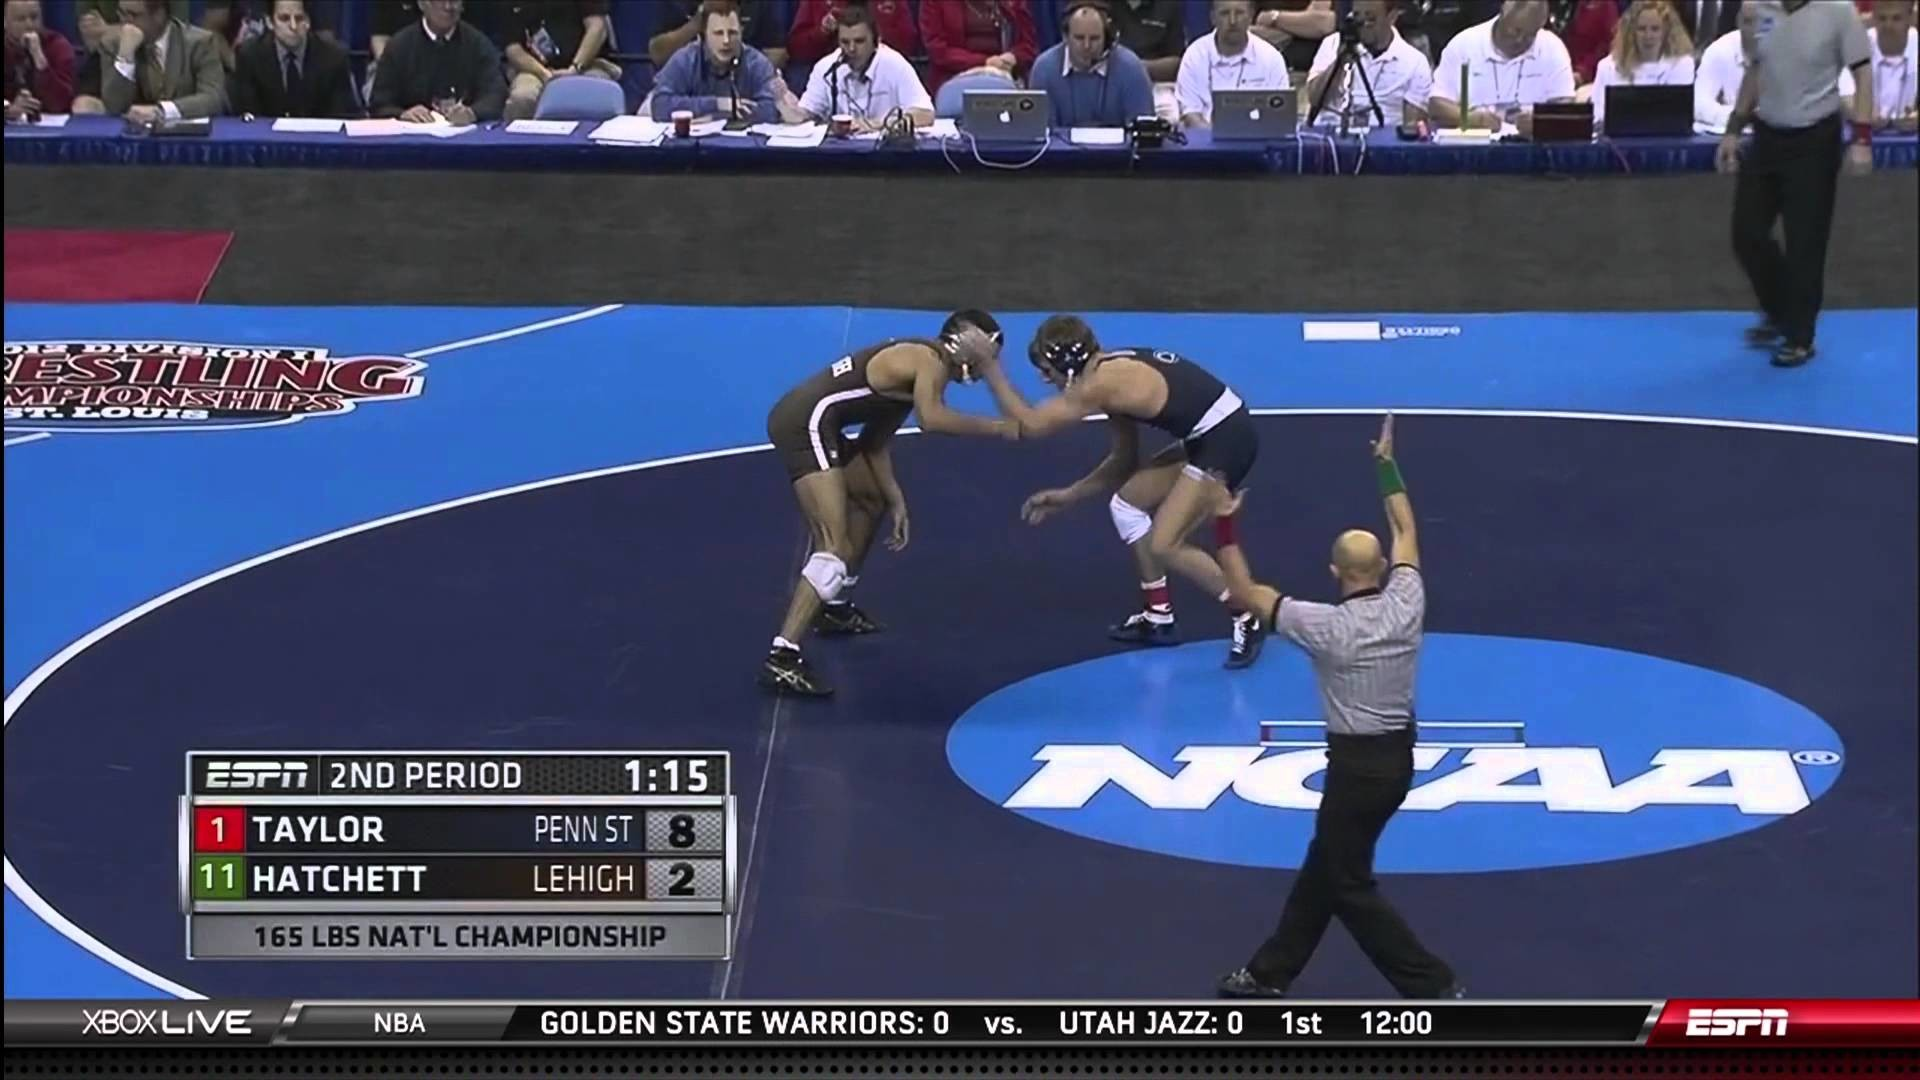 1920x1080 NCAA Wrestling National Championships Division 1 David Taylor vs. Brandon  Hatchett - YouTube